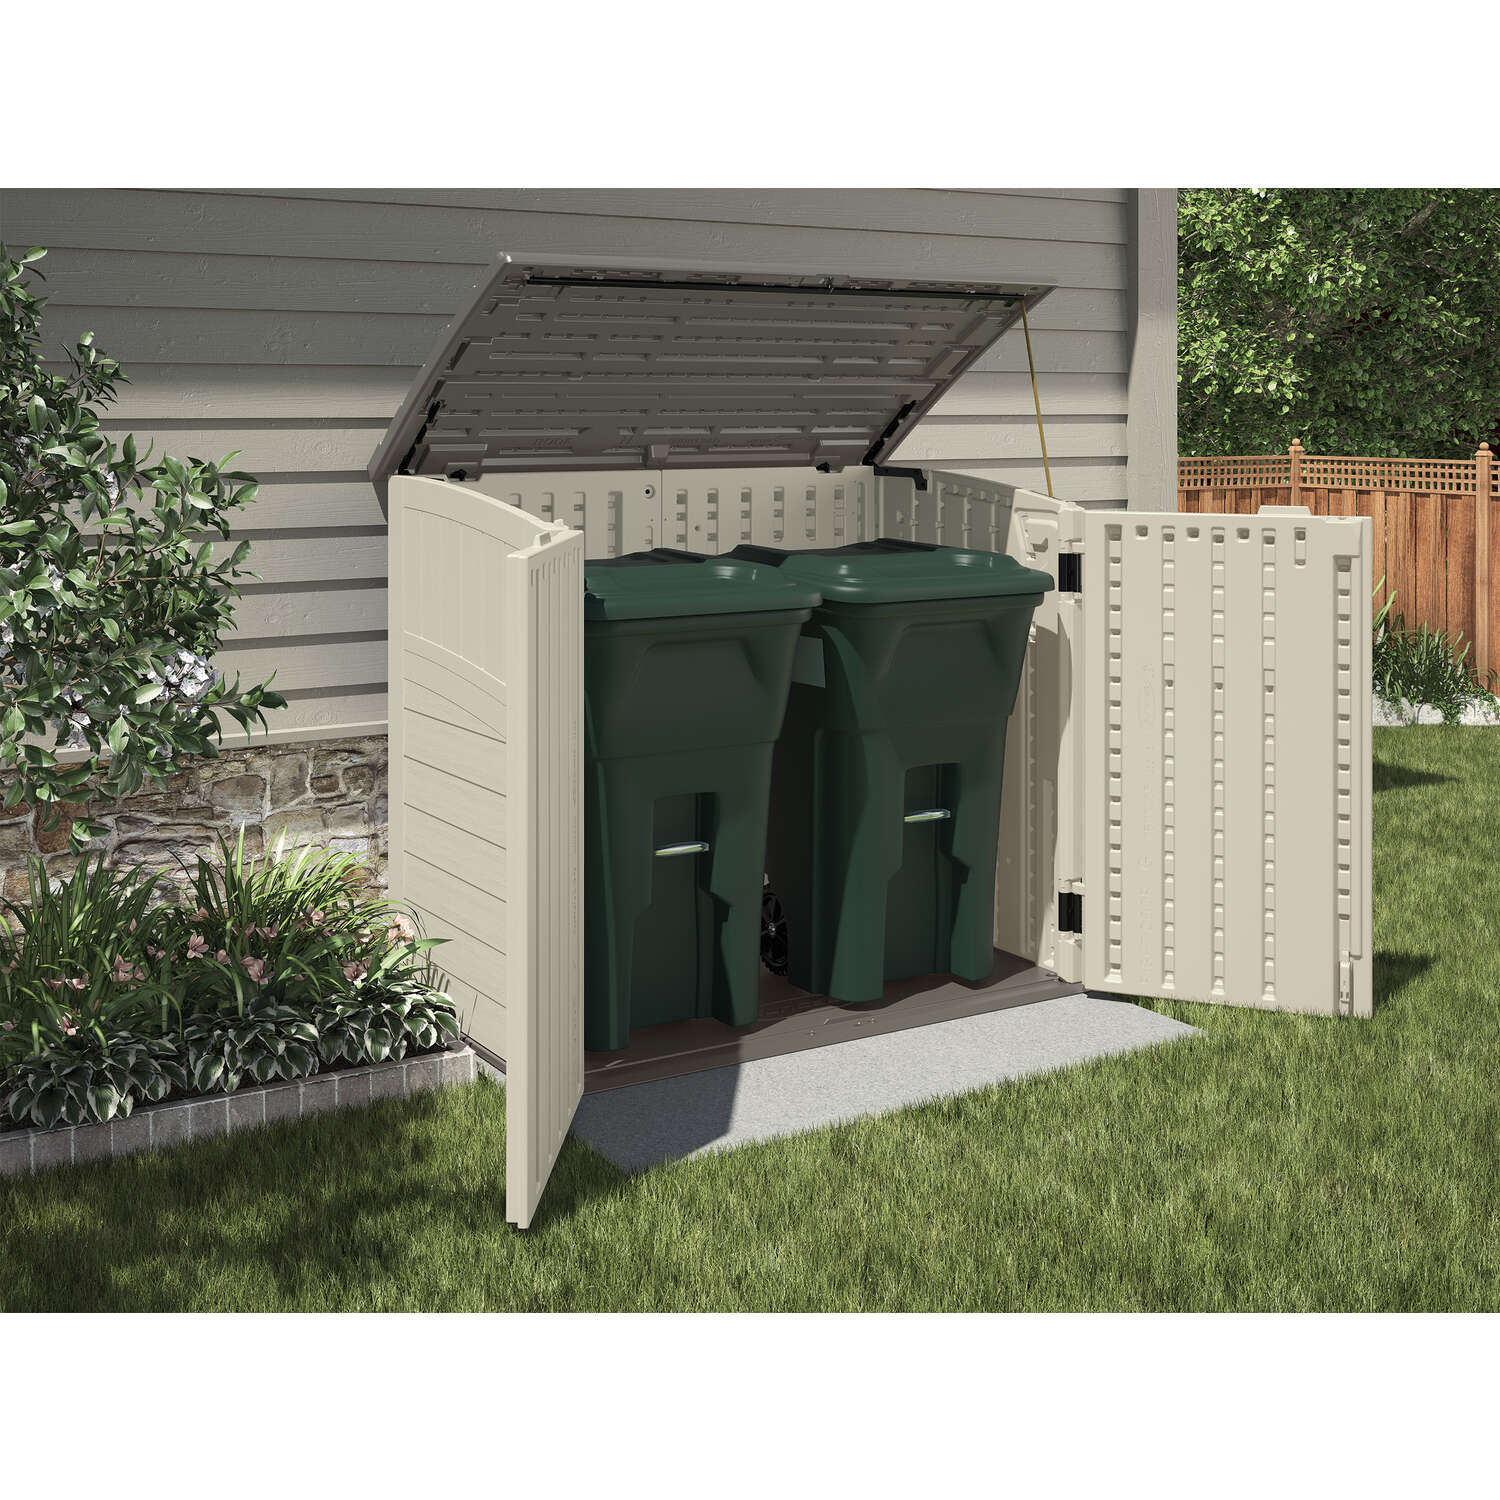 Suncast  45-1/2 in. H x 53 in. W x 32-1/4 in. D Vanilla  Horizontal Storage Shed  Resin